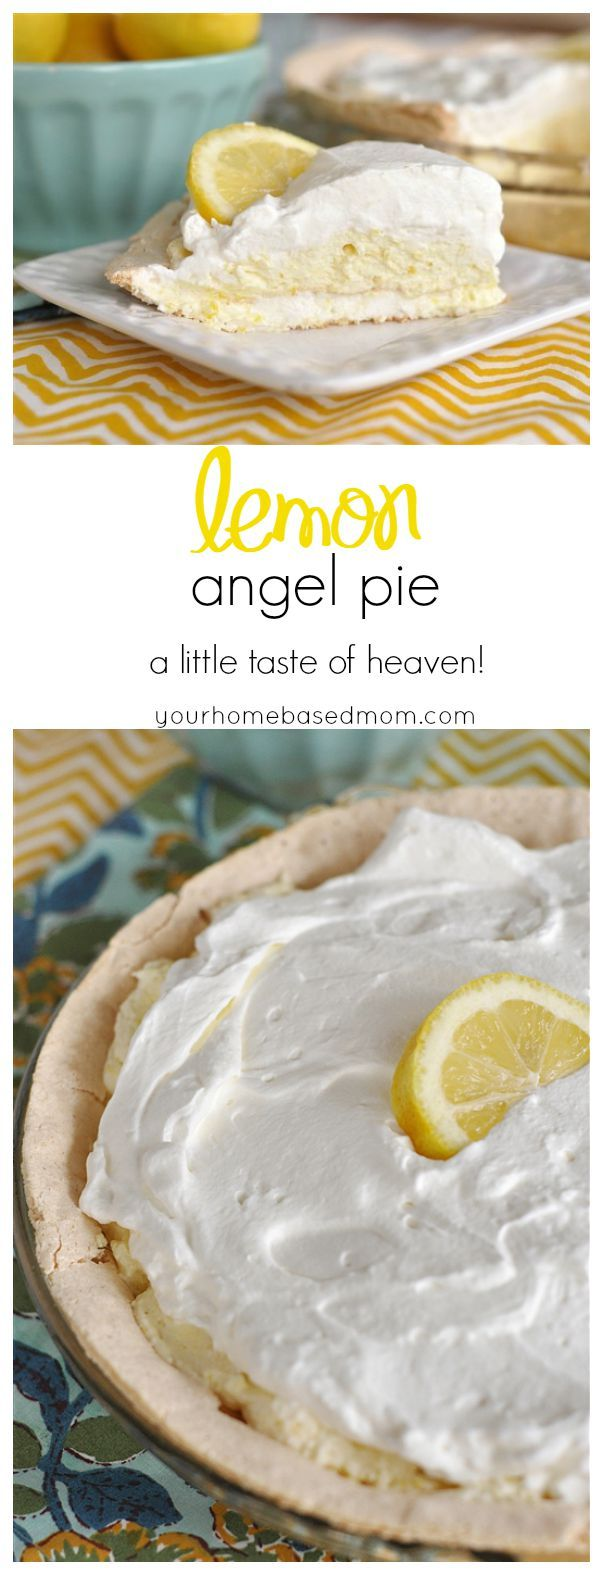 Lemon Angel Pie Recipe - This is a little taste of heaven in your mouth!